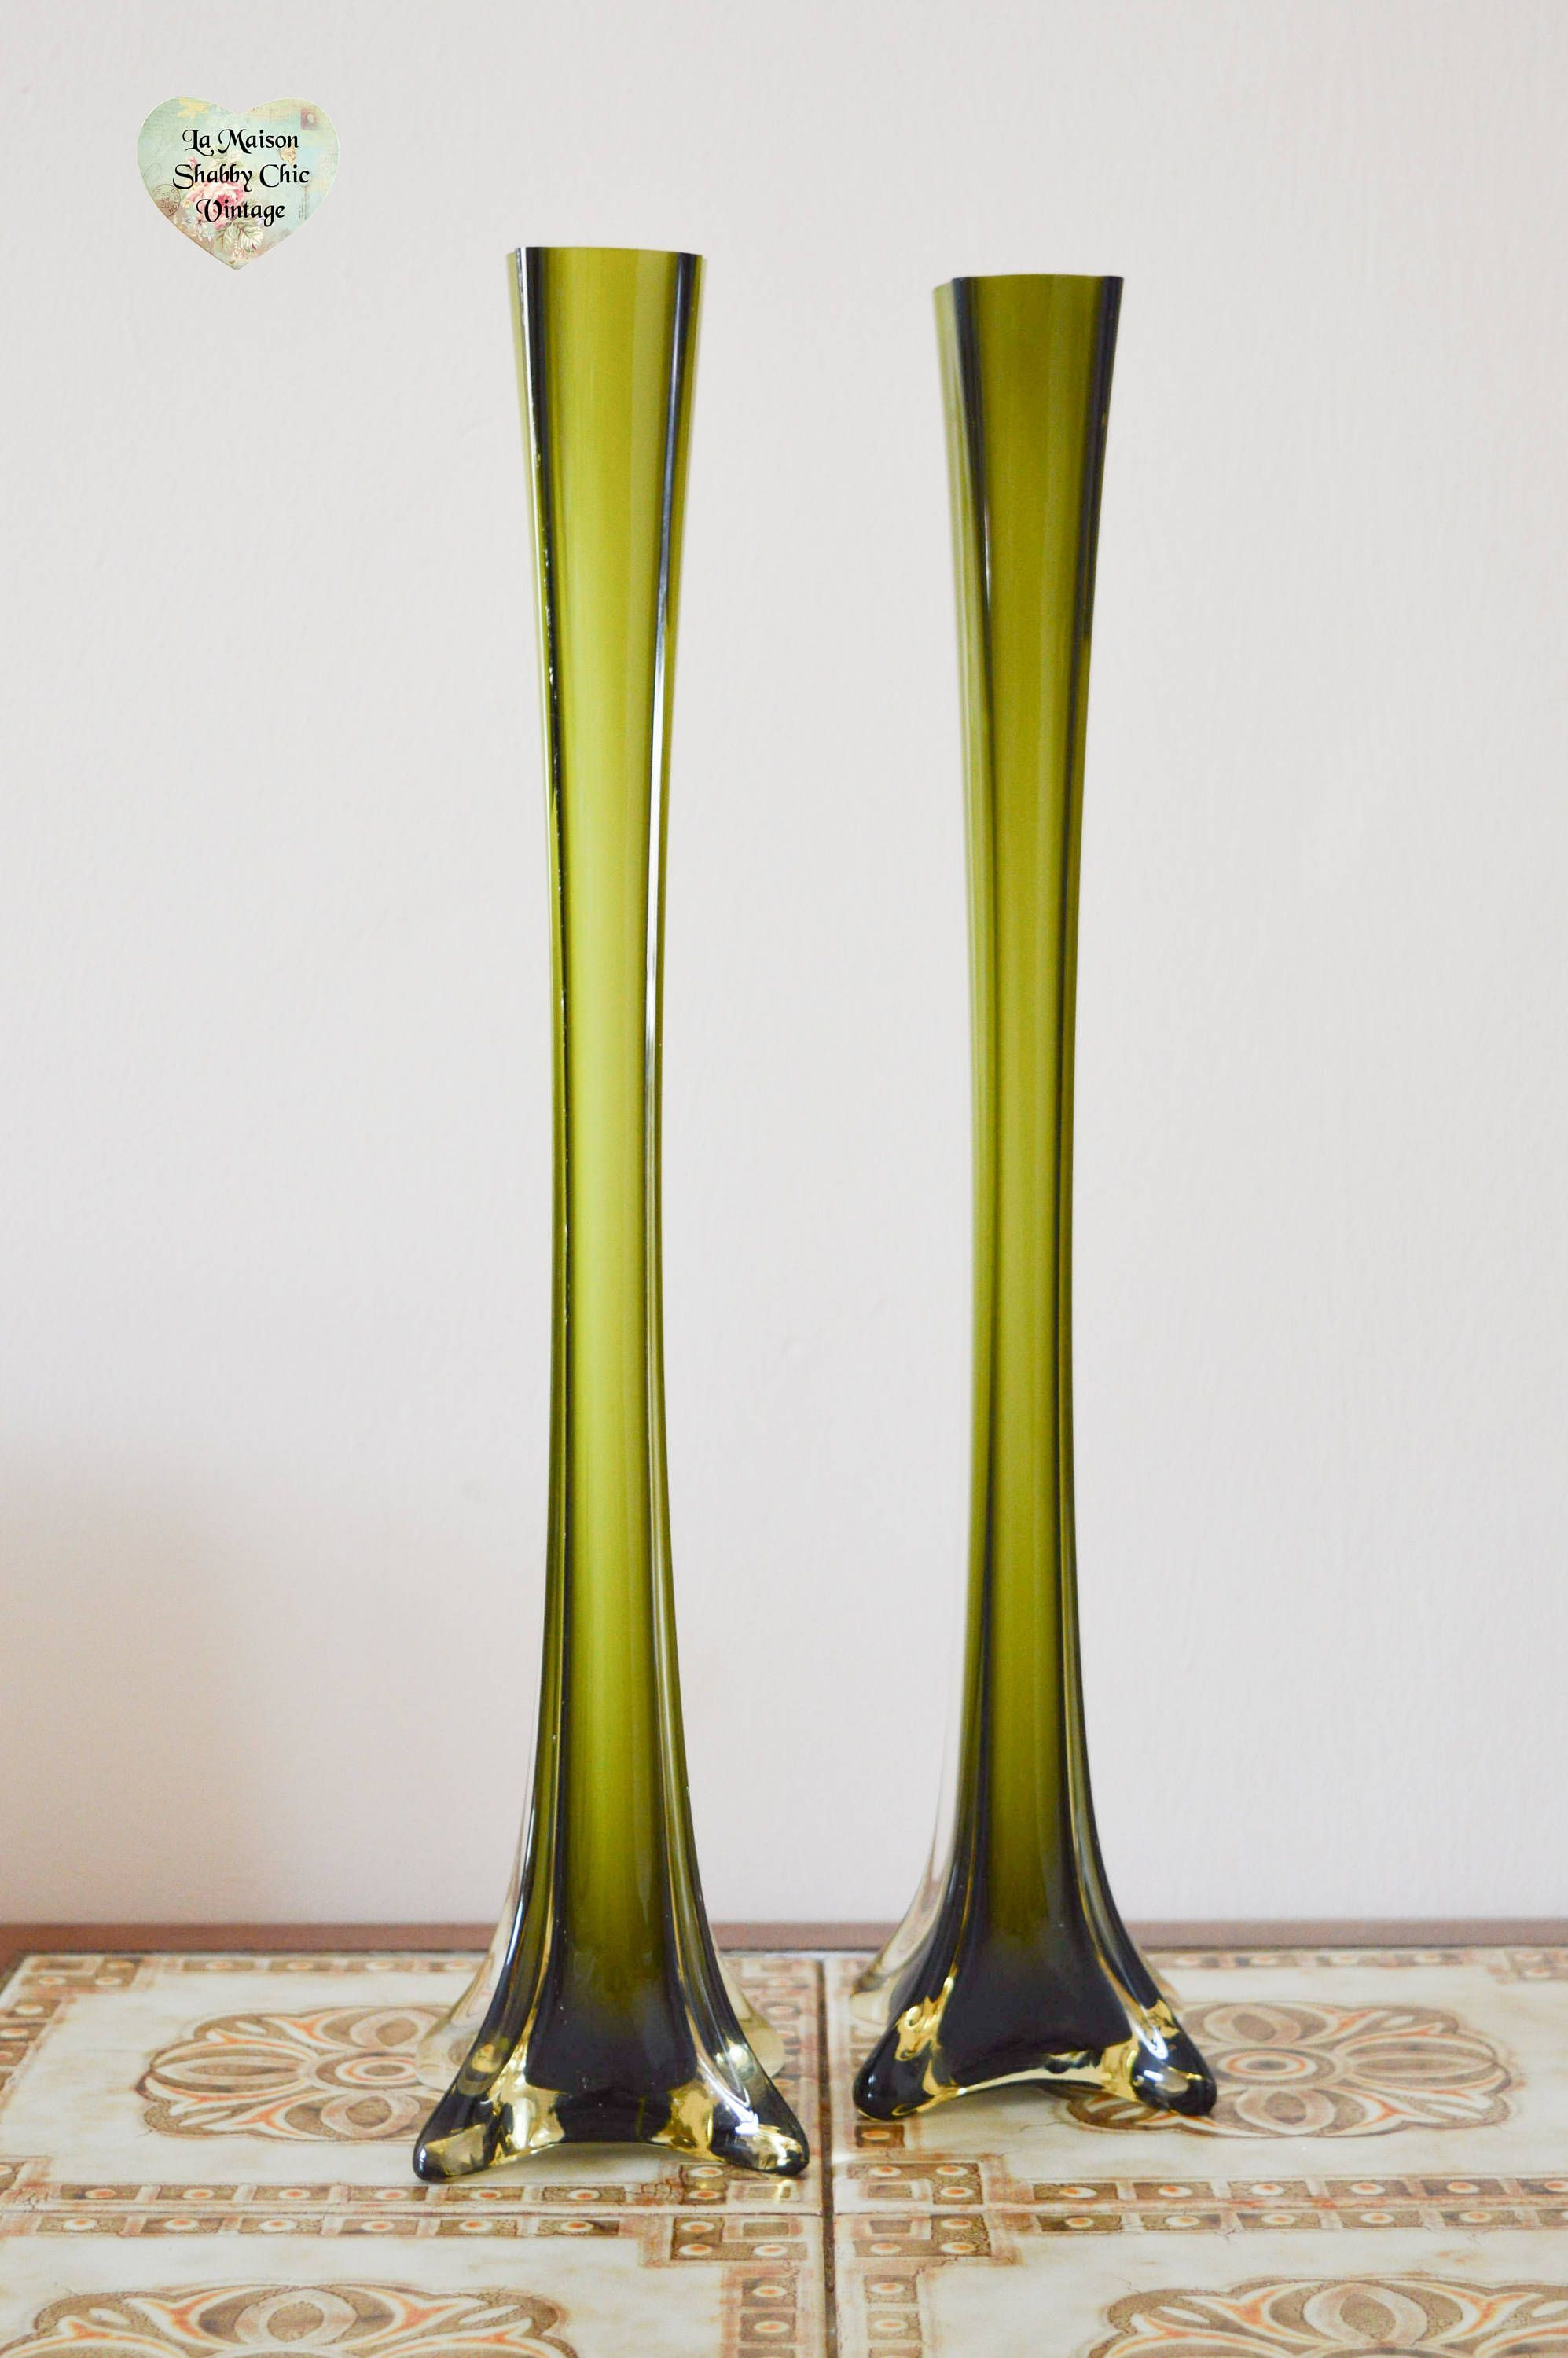 Solid Brass Vase Of 35 Antique Green Glass Vases the Weekly World In Retro Skinny Glass Vases Pair 2 Shades Of Green Retro Flower Vases